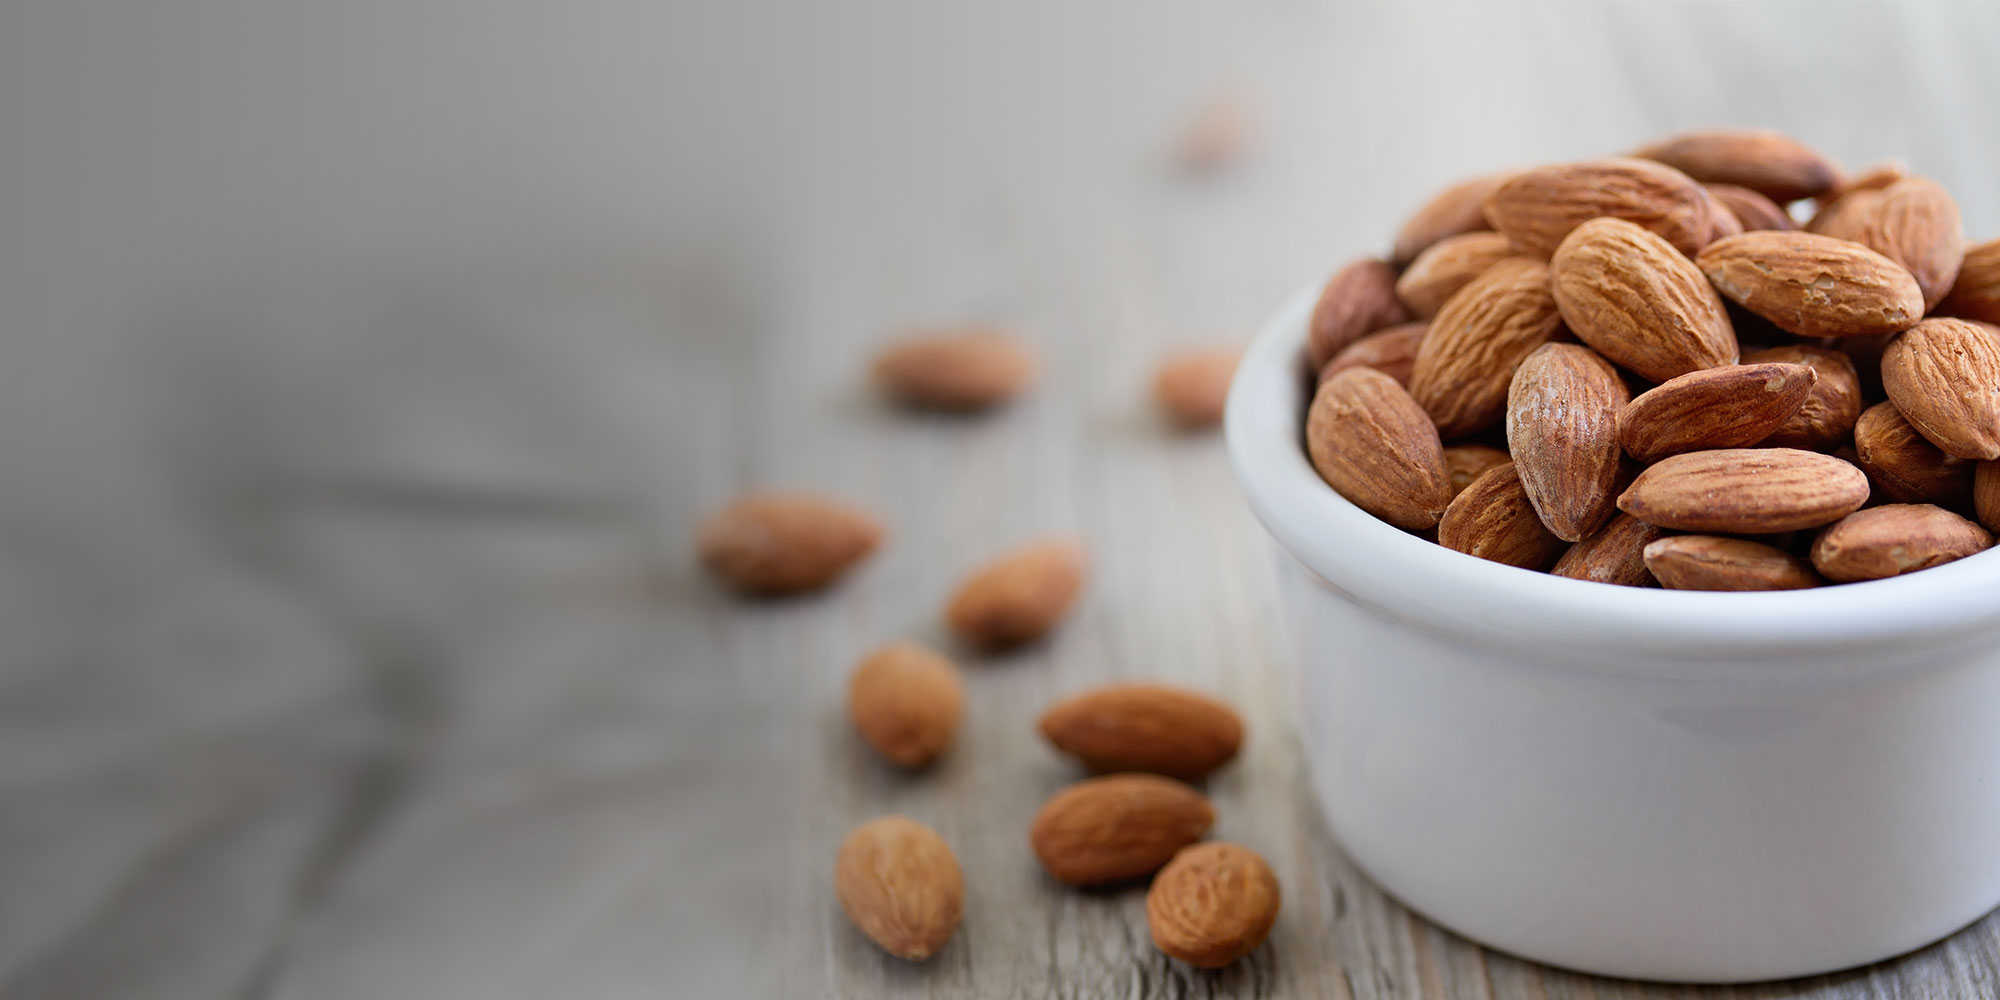 Bowl of healthy and delicious almonds